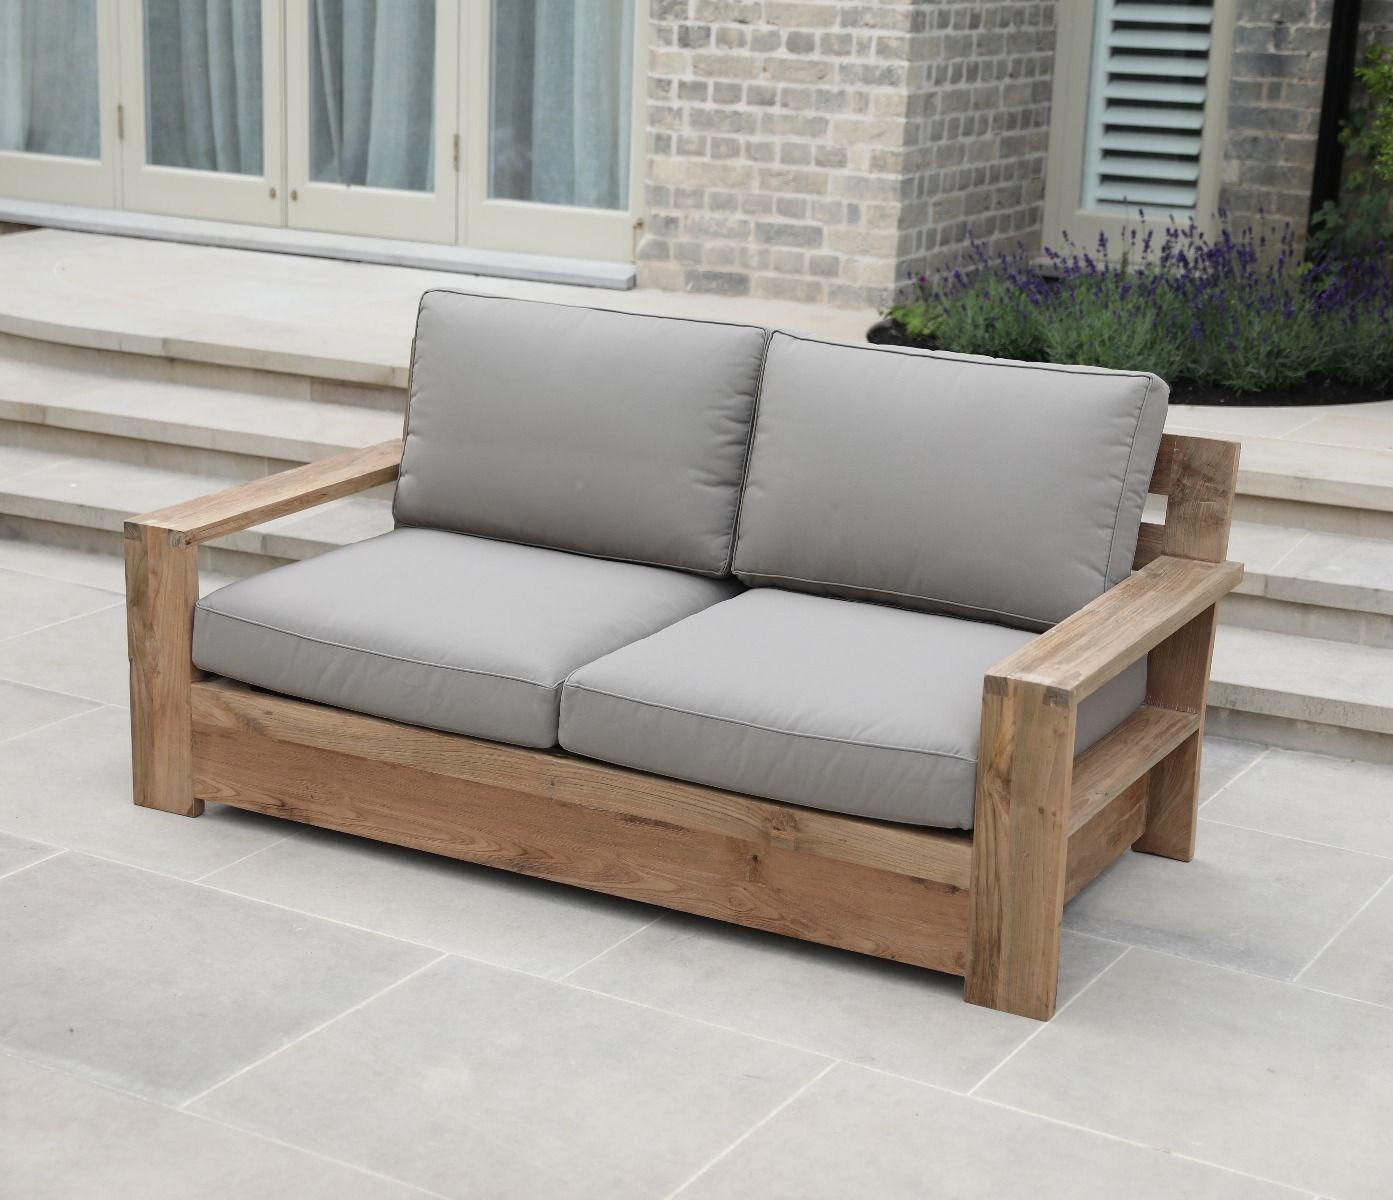 Two seater outdoor sofa